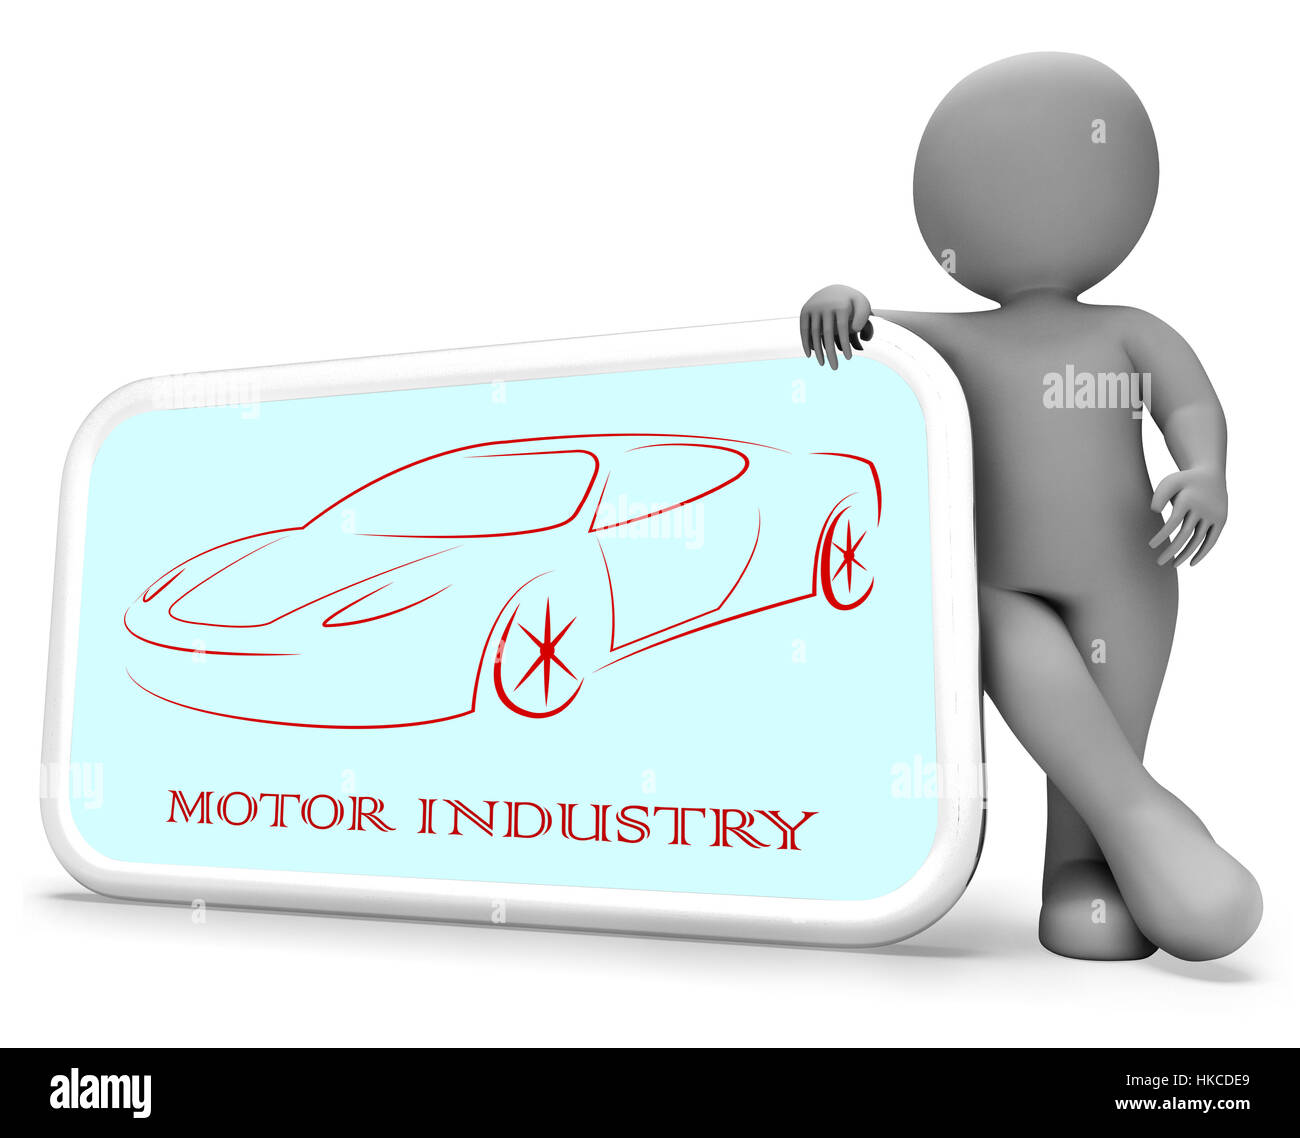 Motor Industry Phone Representing Industries Manufacture And Automobile 3d Rendering - Stock Image